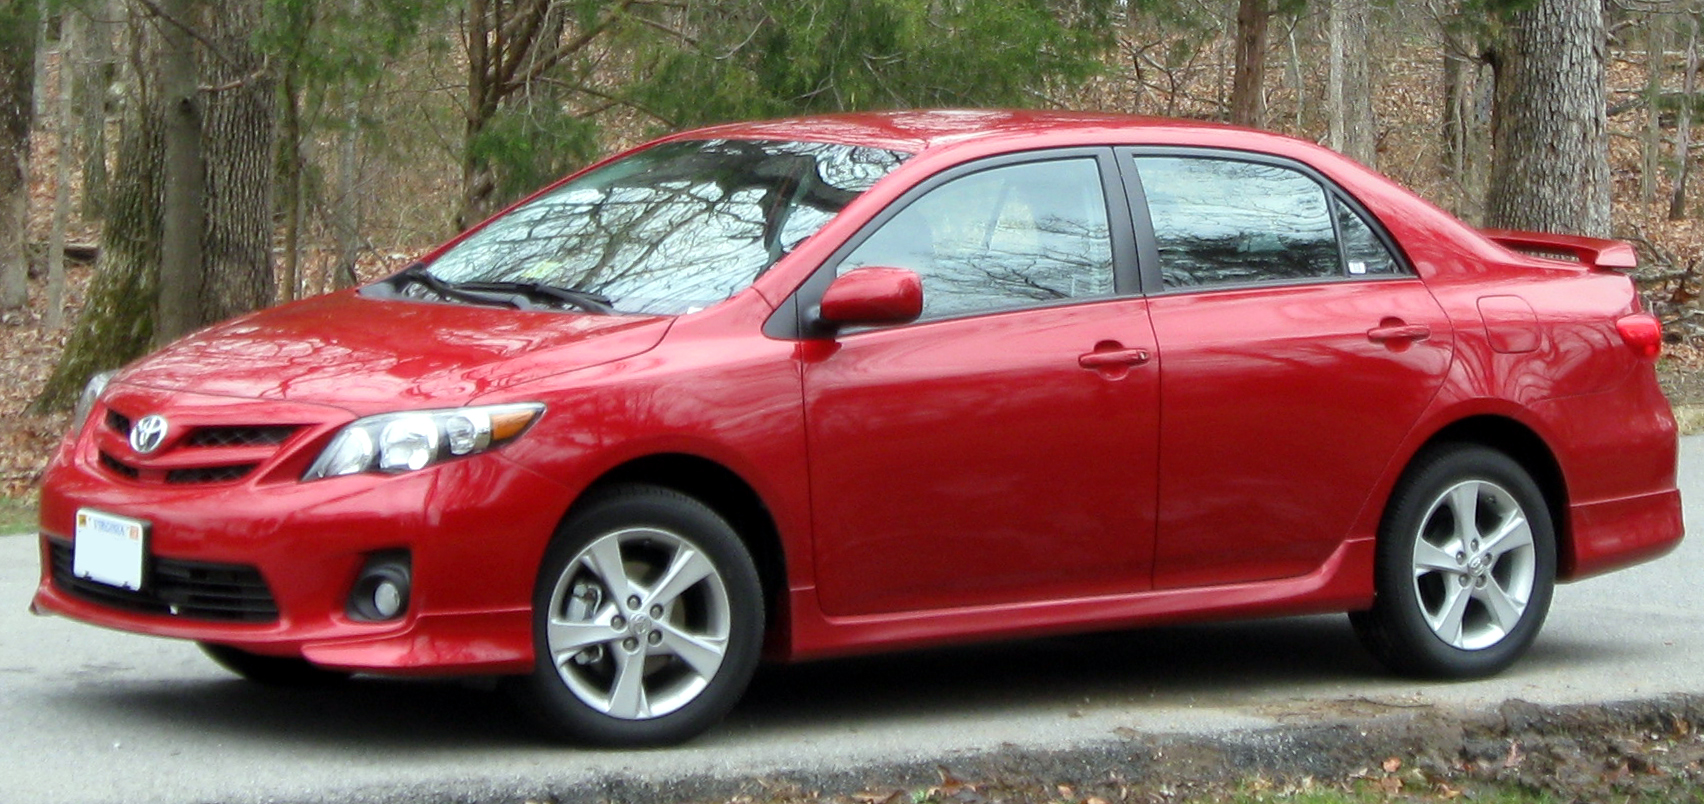 hight resolution of corolla s us facelift